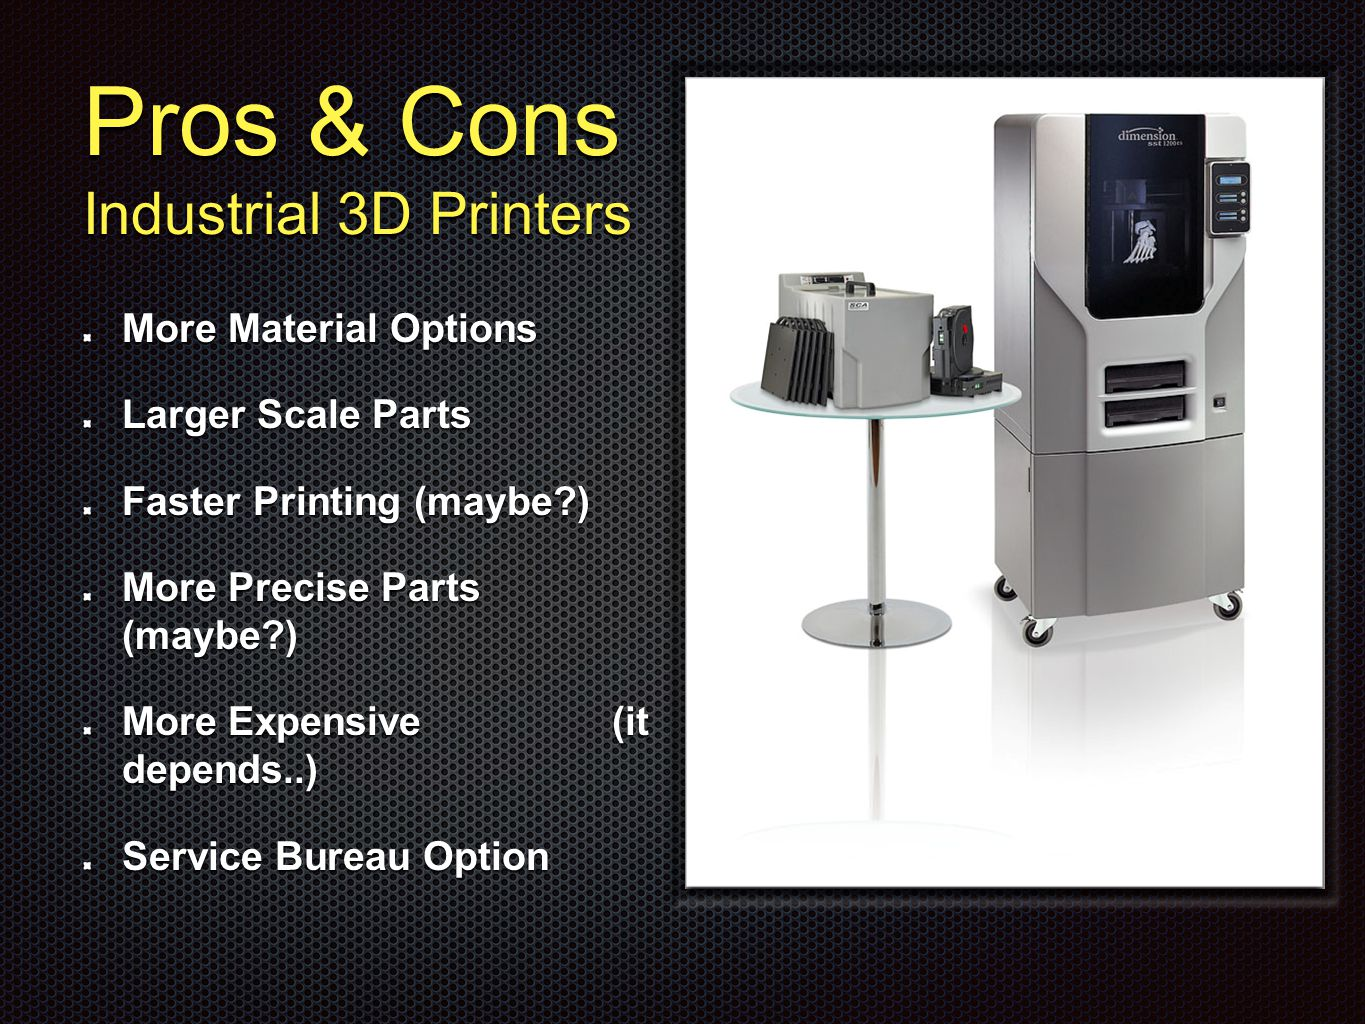 Pros & Cons Industrial 3D Printers More Material Options Larger Scale Parts Faster Printing (maybe ) More Precise Parts (maybe ) More Expensive (it depends..) Service Bureau Option